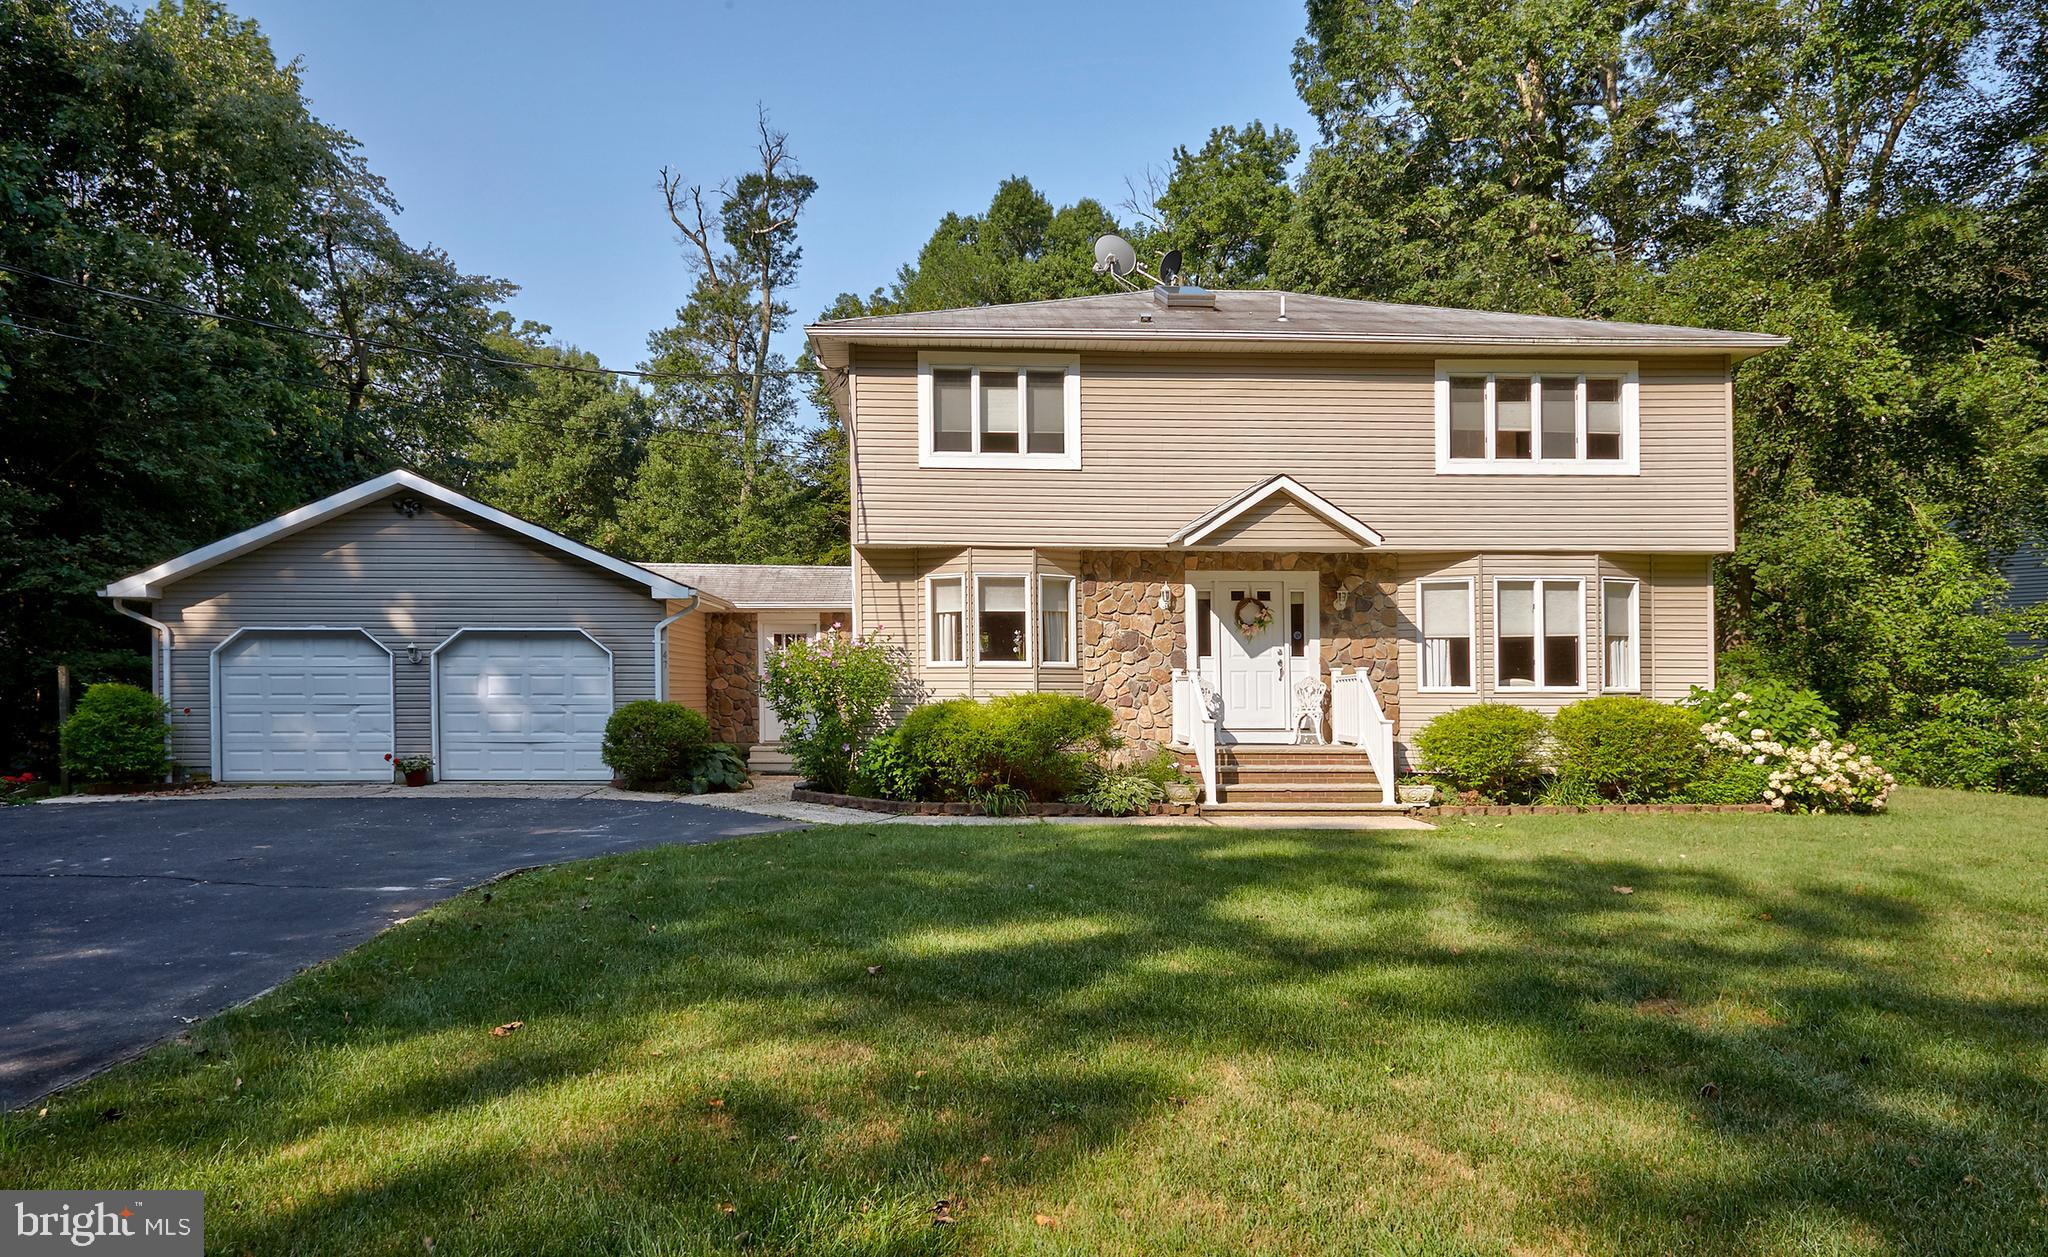 47 BRYNMORE ROAD, NEW EGYPT, NJ 08533